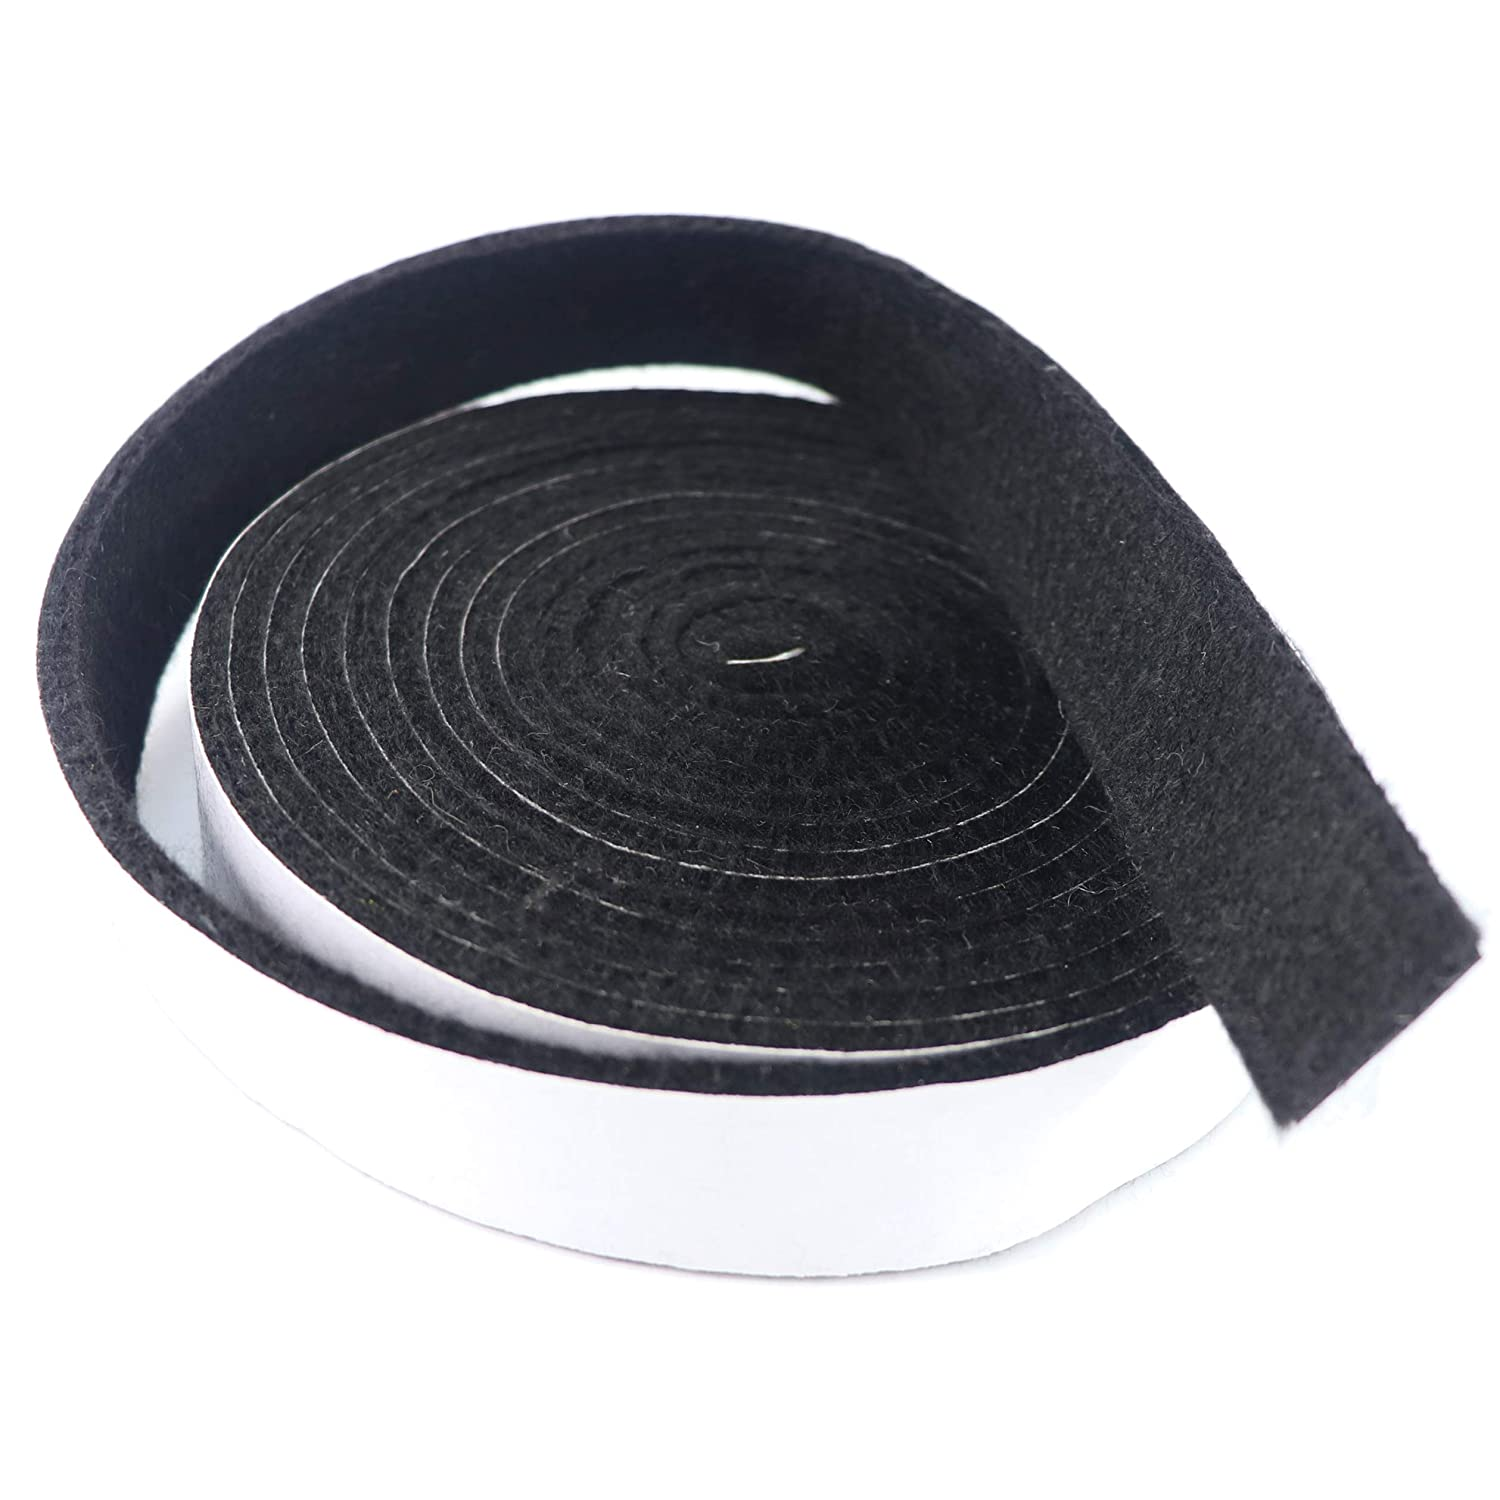 LANUCN BBQ Smoke Seal Strip/Self Stick Leak Proof Smoker Gasket/Oven Door Seal Hopper Lid Sealing Strip/Smoke Keeping Strip/Heat Resistant Grill Gasket (8.2ft, 1/2'', 1/8'', 2 Pack) (Black) 1/2'' 1/8''